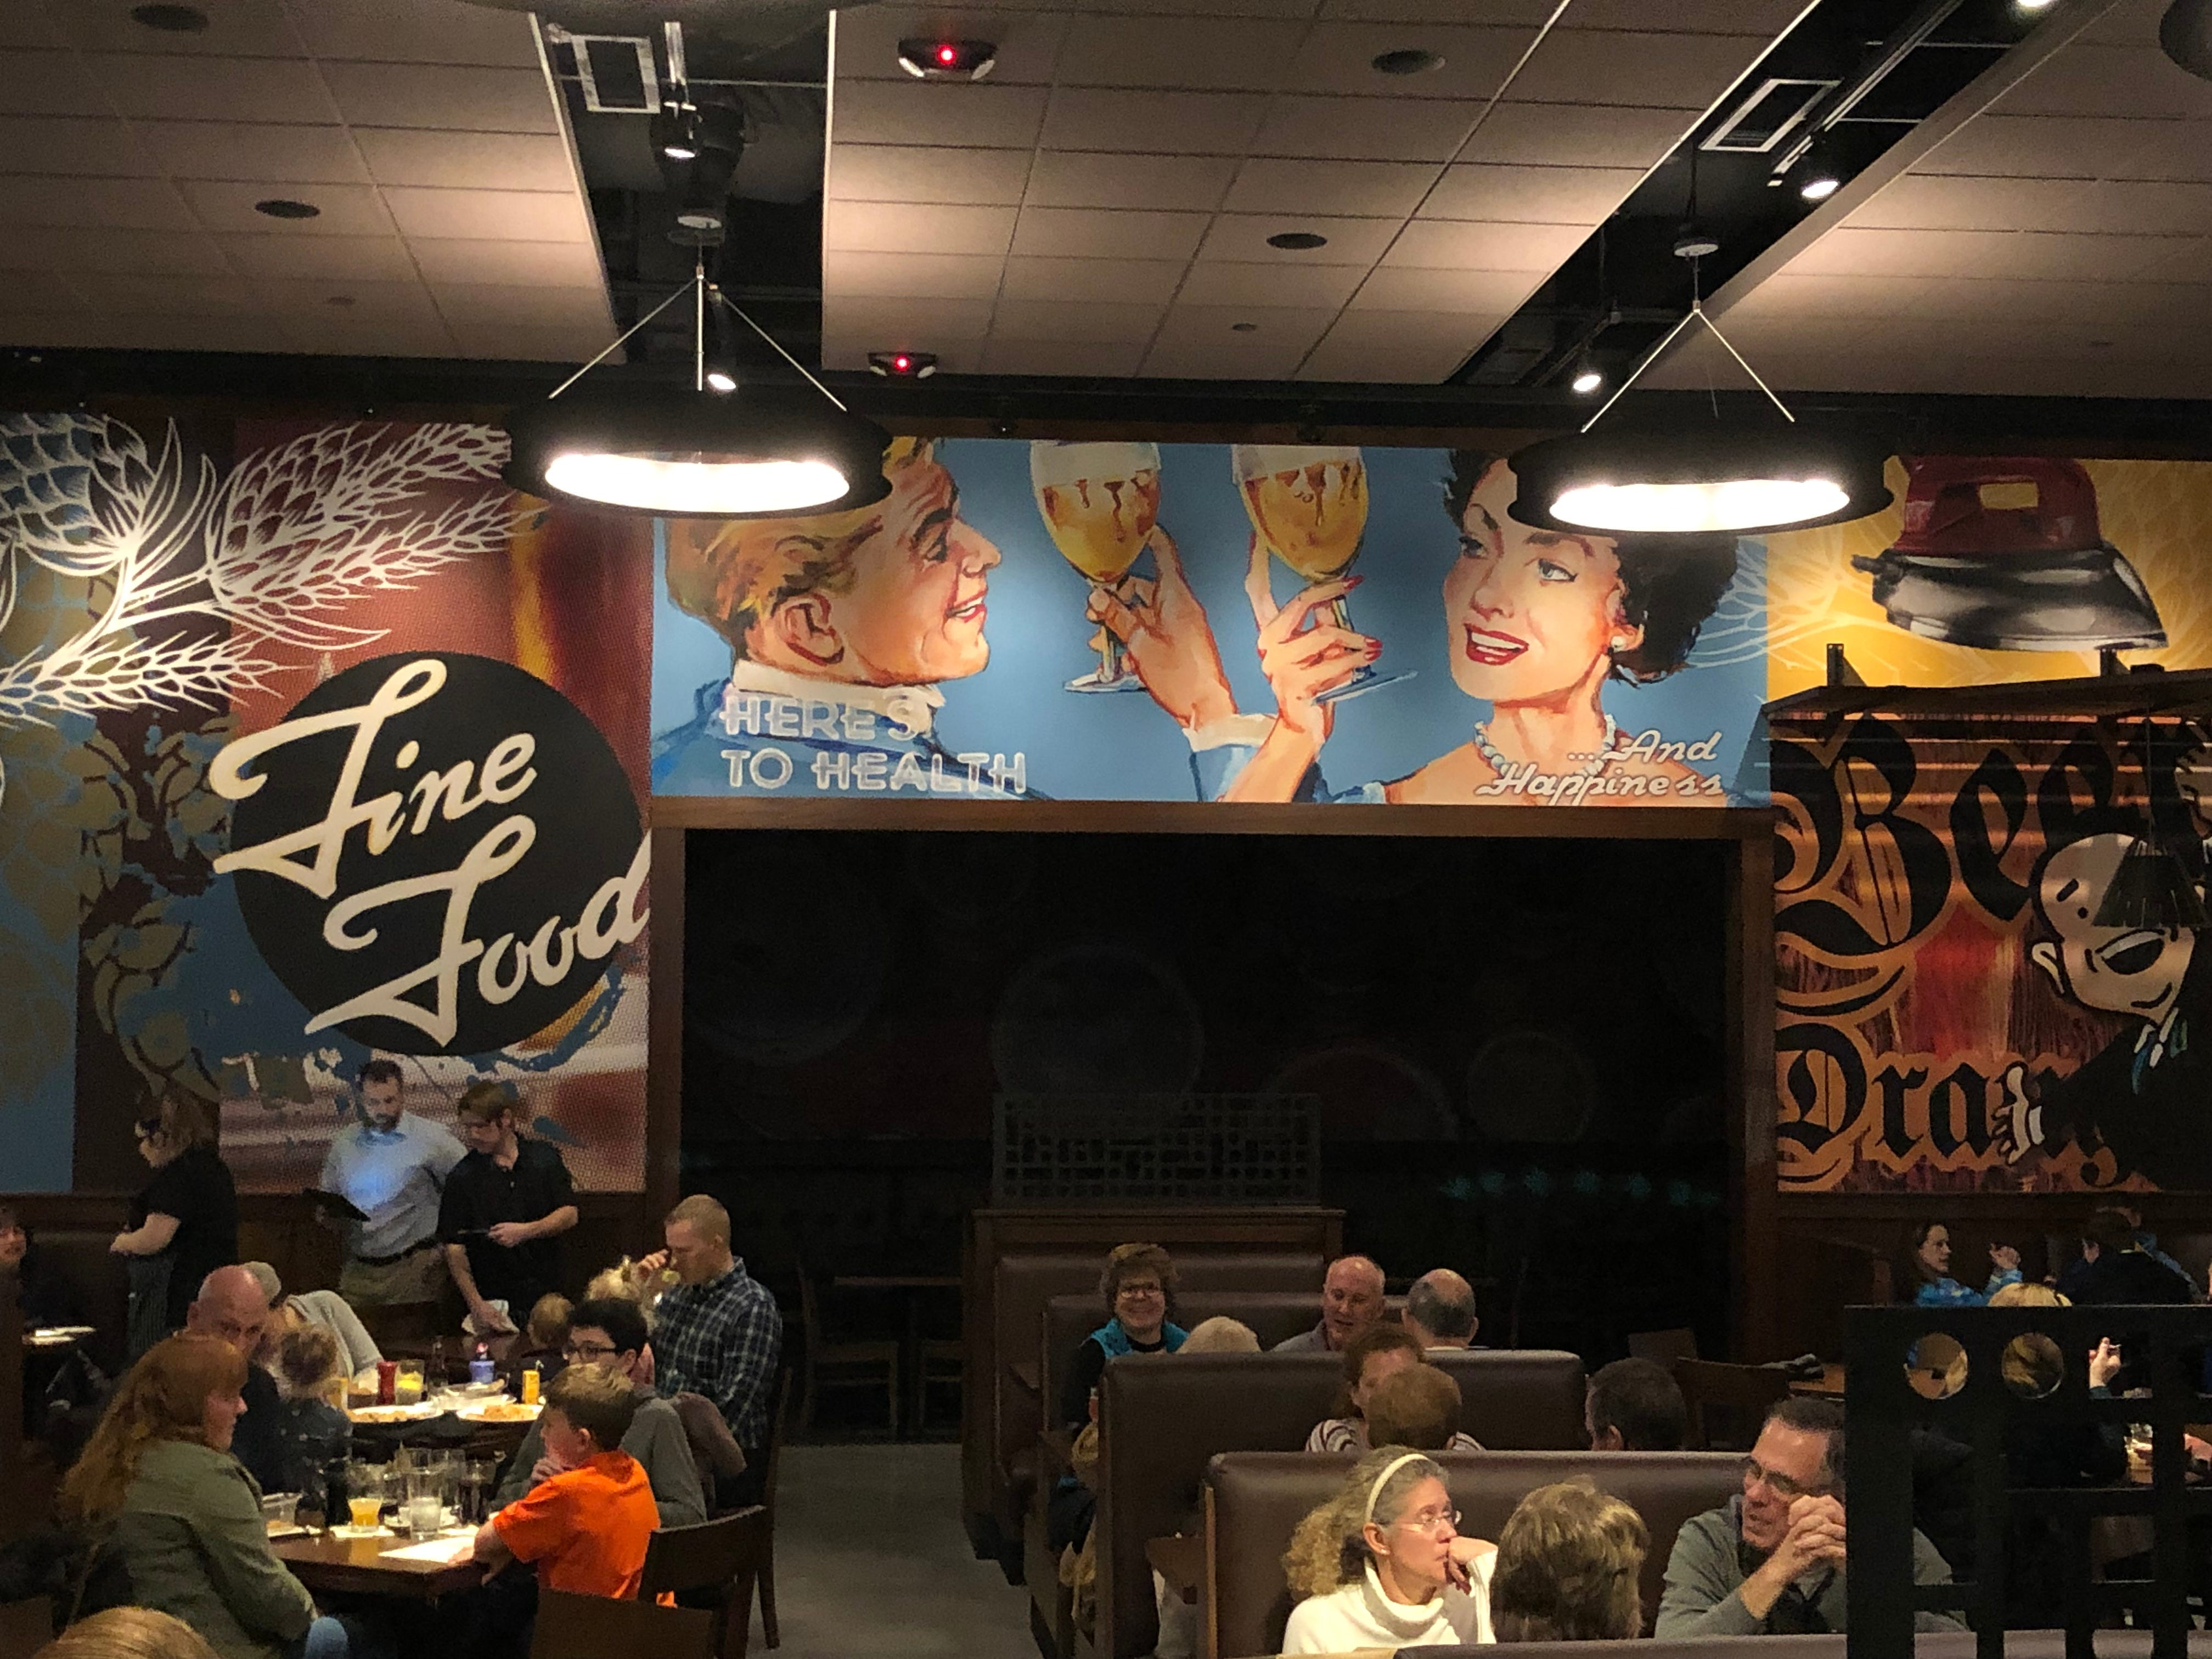 Cool murals give Iron Hill Brewery & Restaurant a fun vibe to go with its relaxed, casual atmosphere.